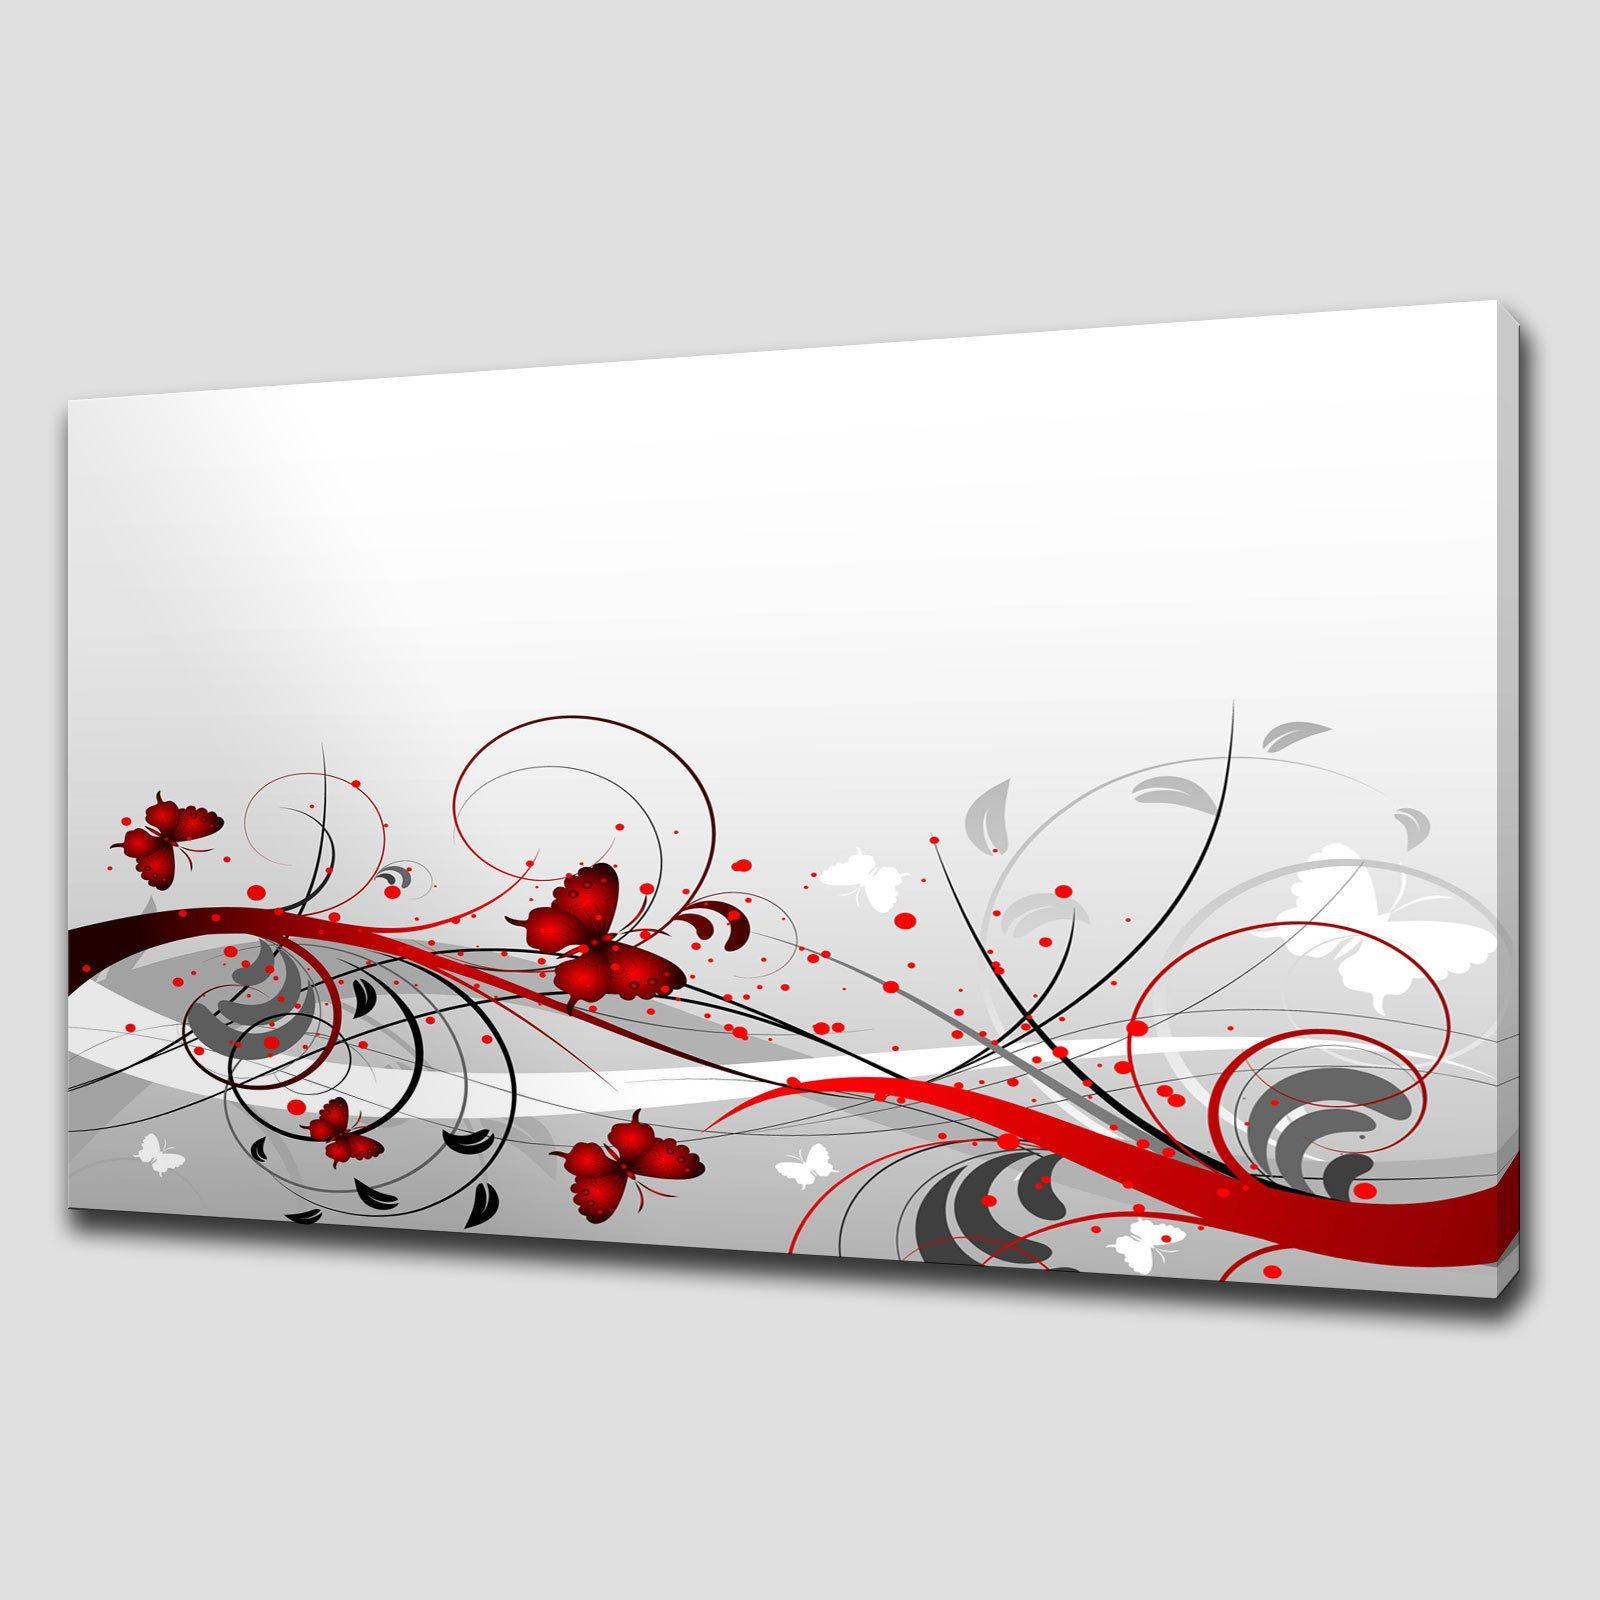 Canvas print pictures high quality handmade free next for Abstract decoration